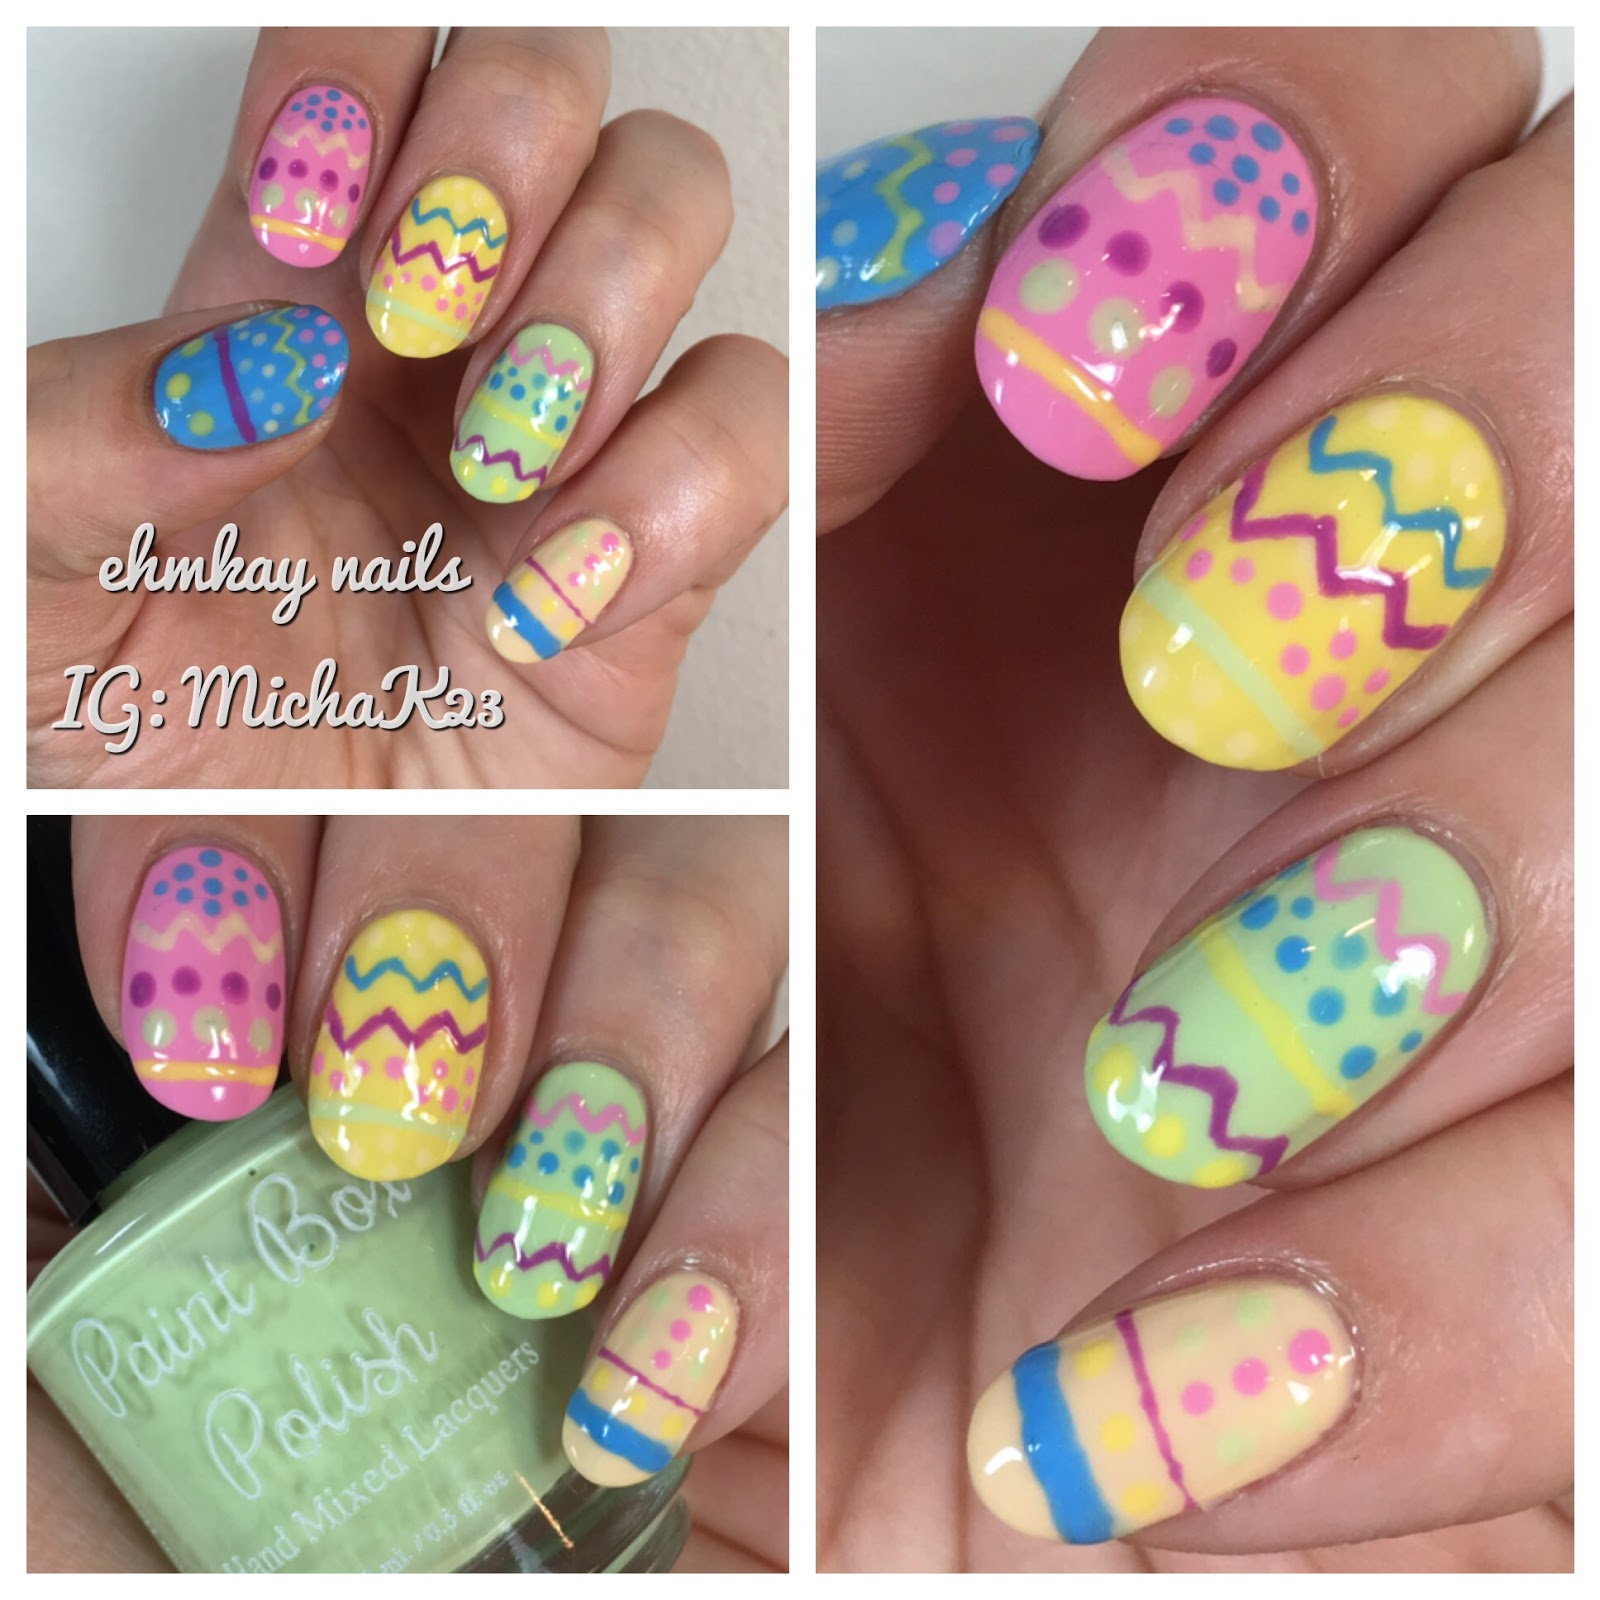 ehmkay nails: Easter Nail Art: Easter Eggs Nail Art with Paint Box ...